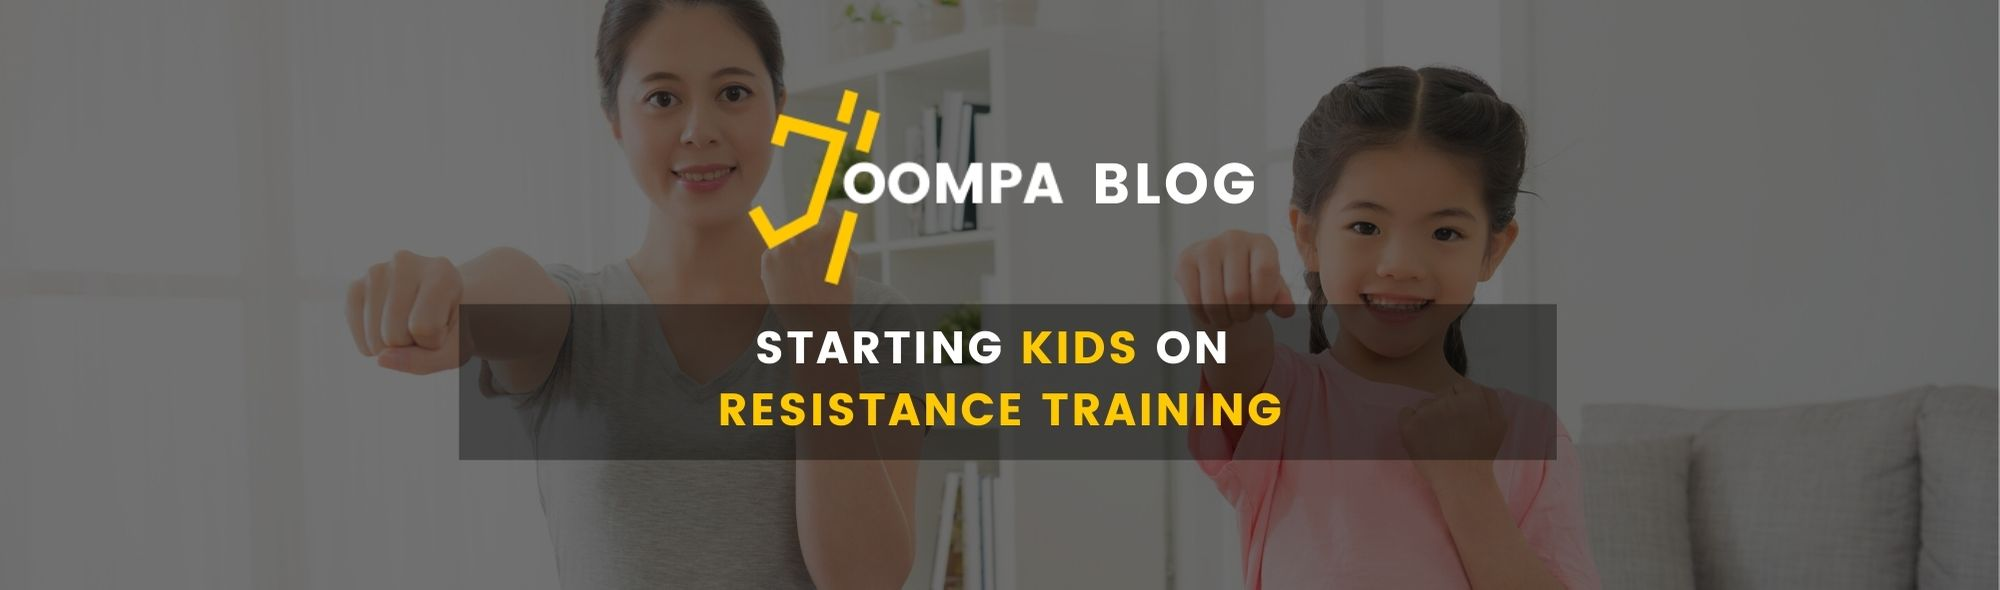 How To (Safely) Get Junior in the Gym: Starting Kids on Resistance Training